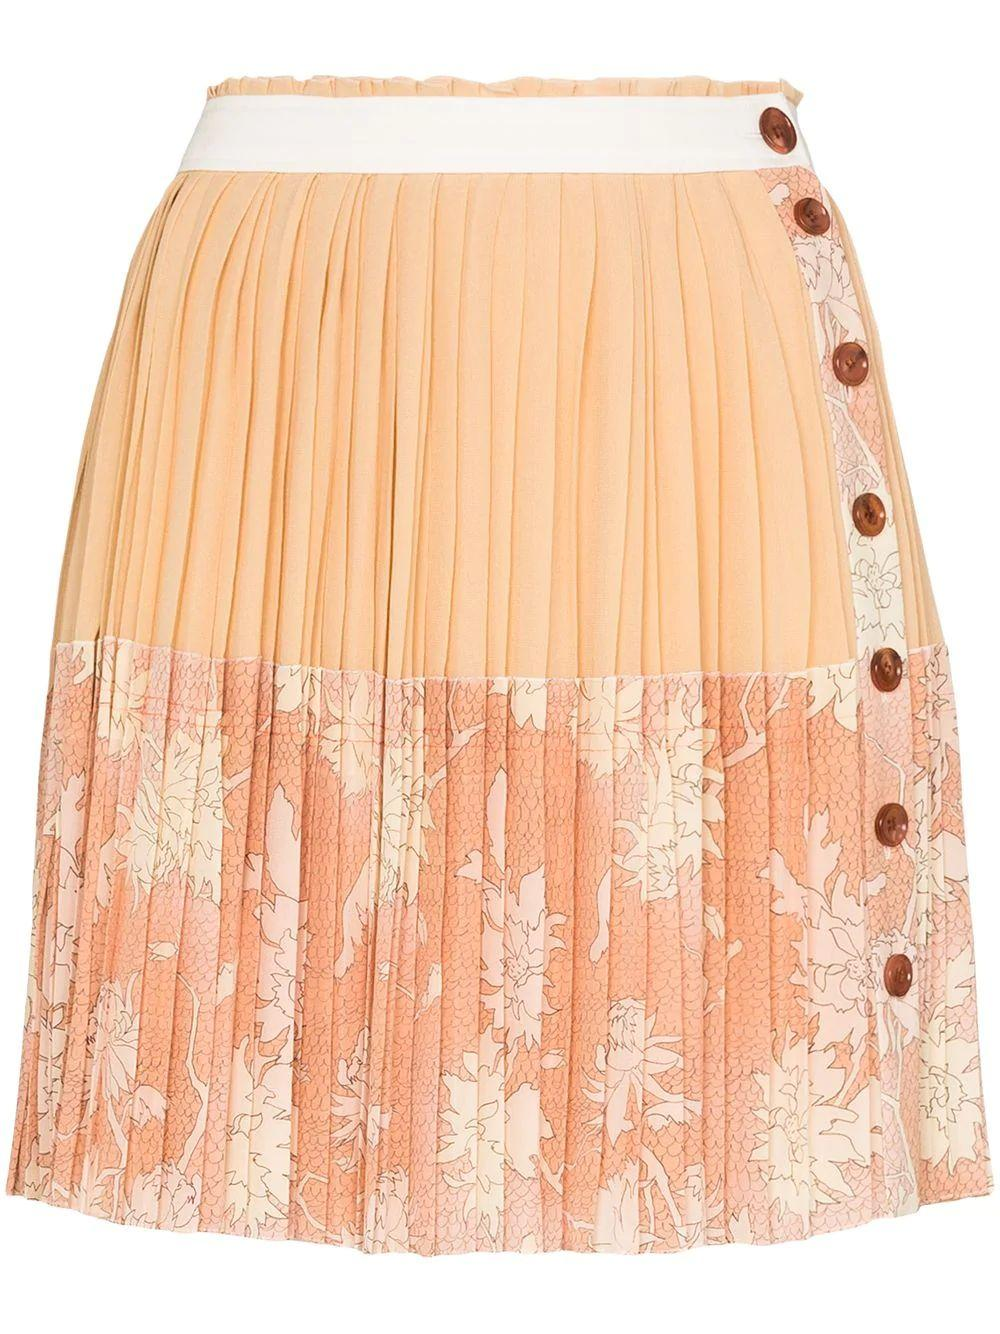 Scale Print Crepe de Chine Skirt